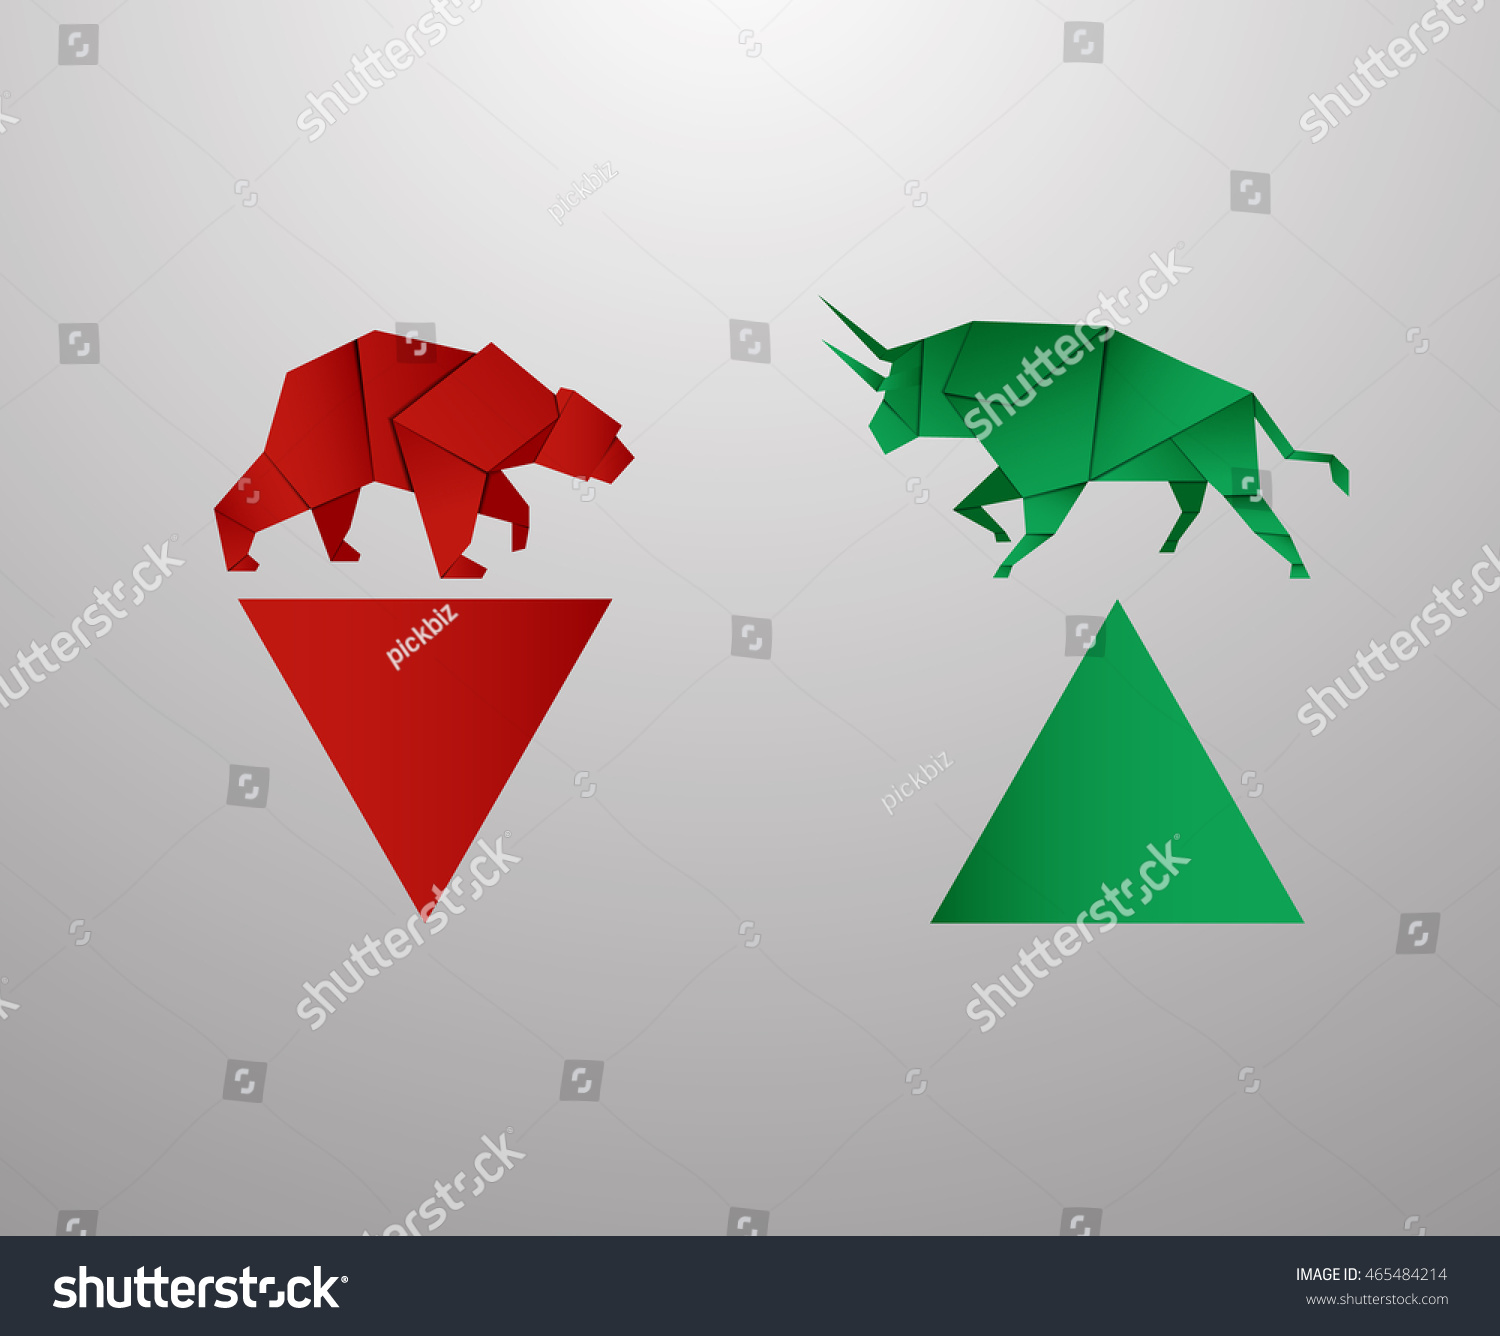 Bull bear paper art red bar stock vector 465484214 shutterstock bull and bear paper art and red bar paper art for stock market vector and illustration buycottarizona